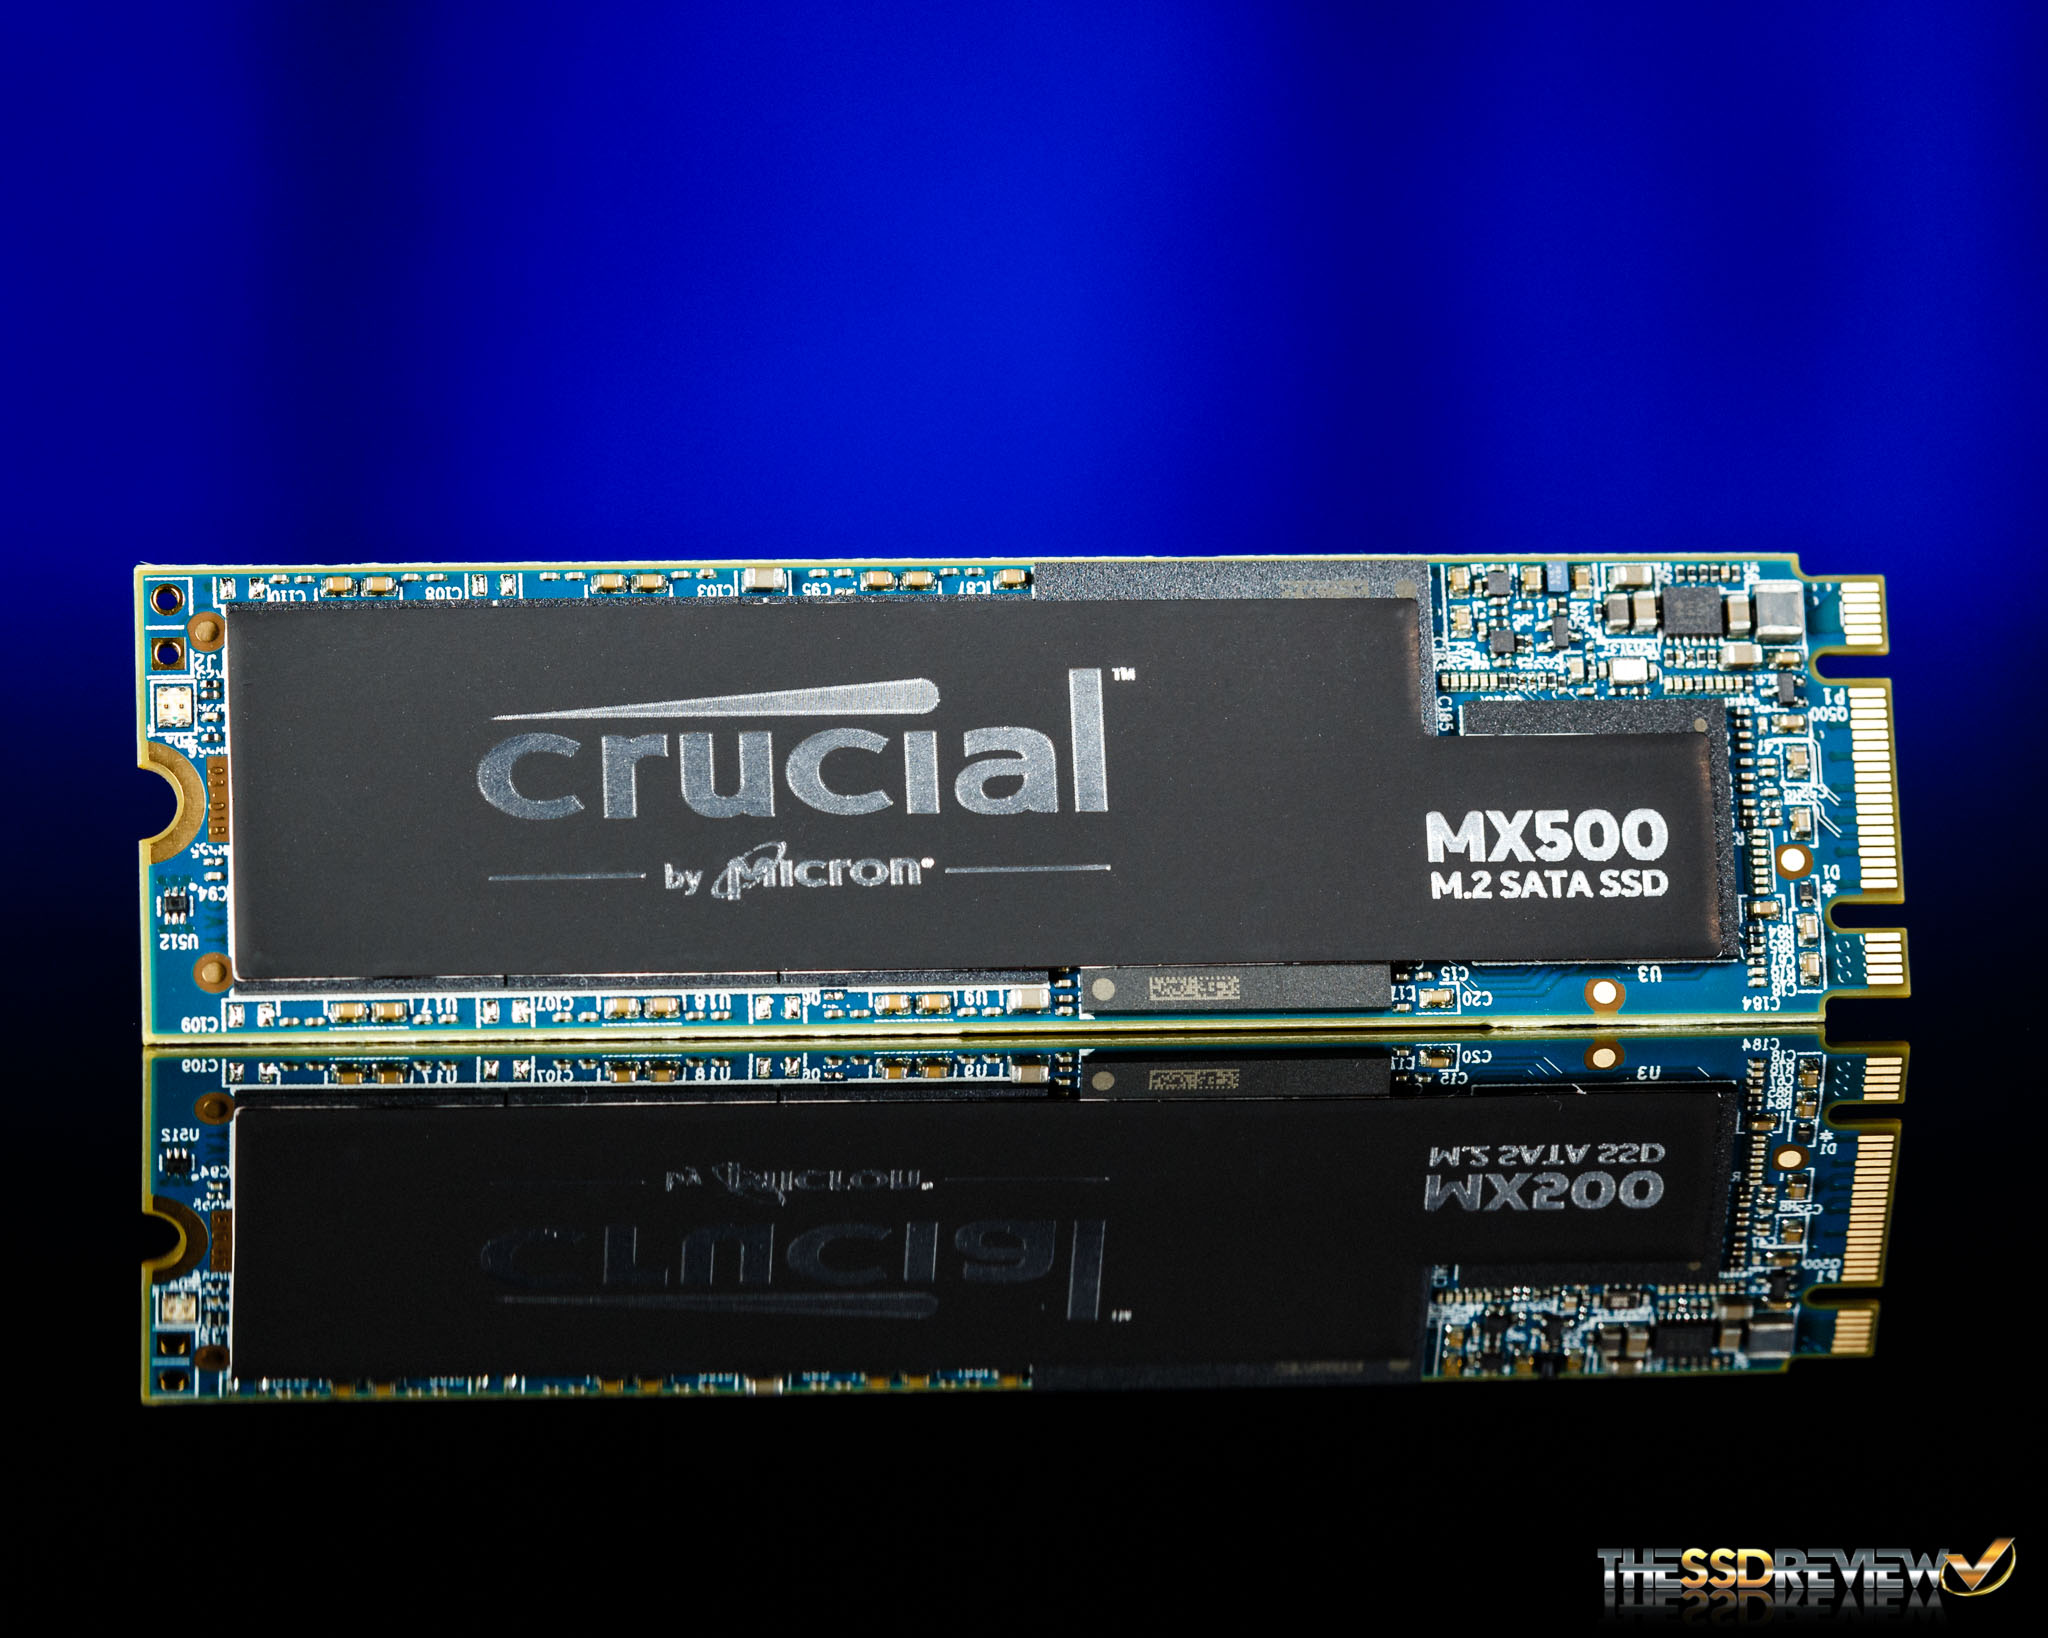 Crucial MX500 M 2 SATA SSD Review (500GB) | Page 5 | The SSD Review